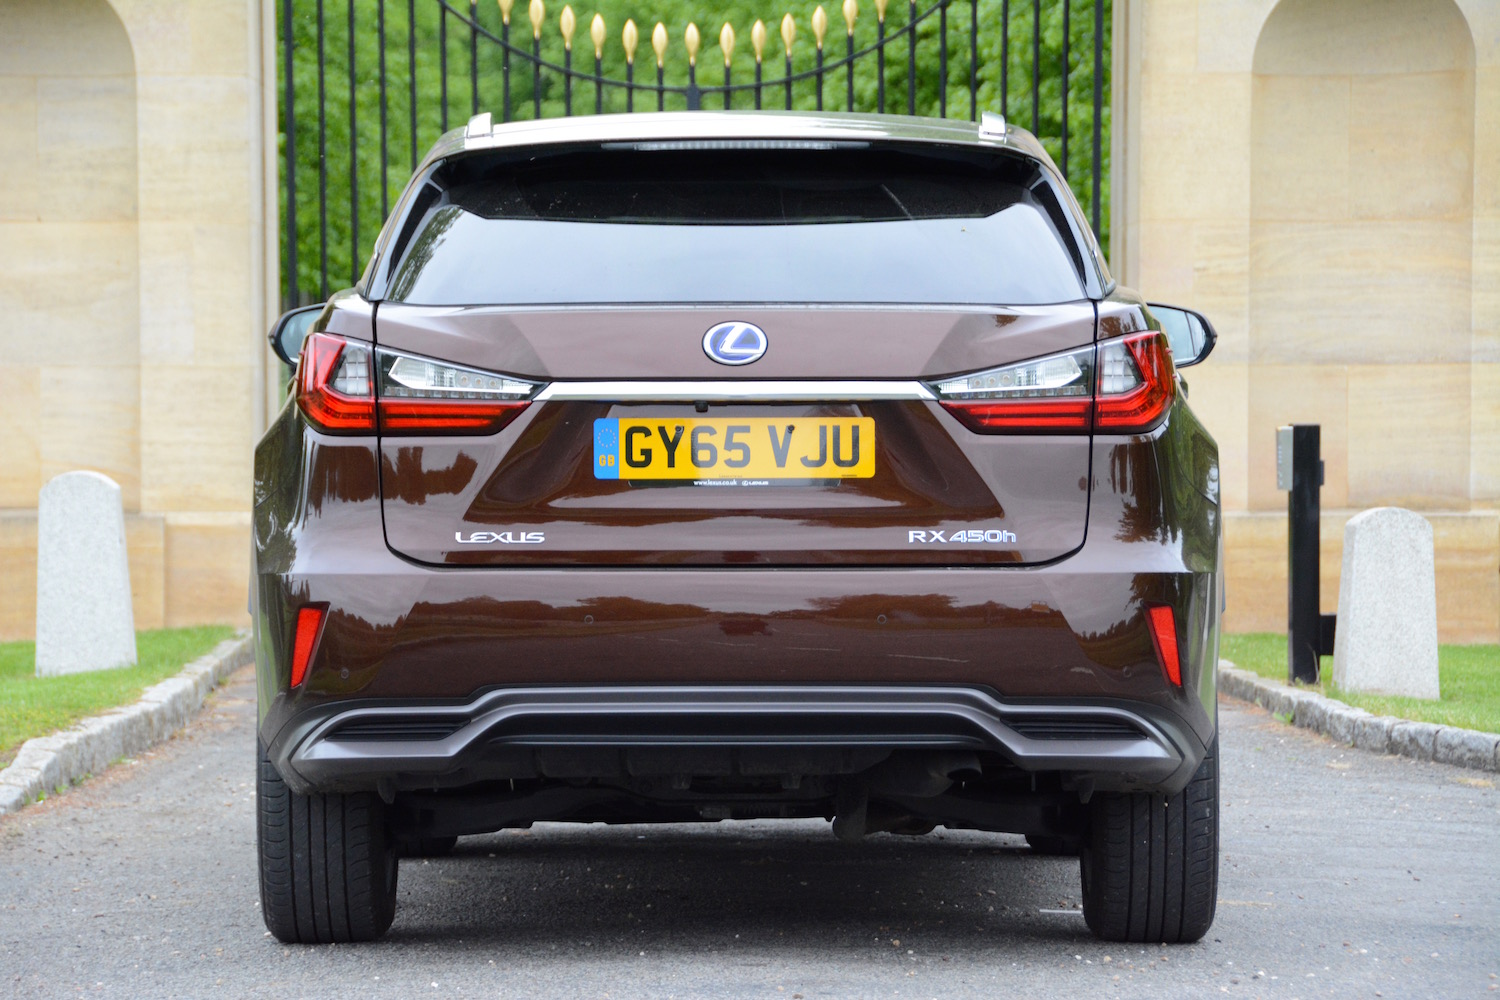 Lexus Rx450h Review Greencarguide Co Uk